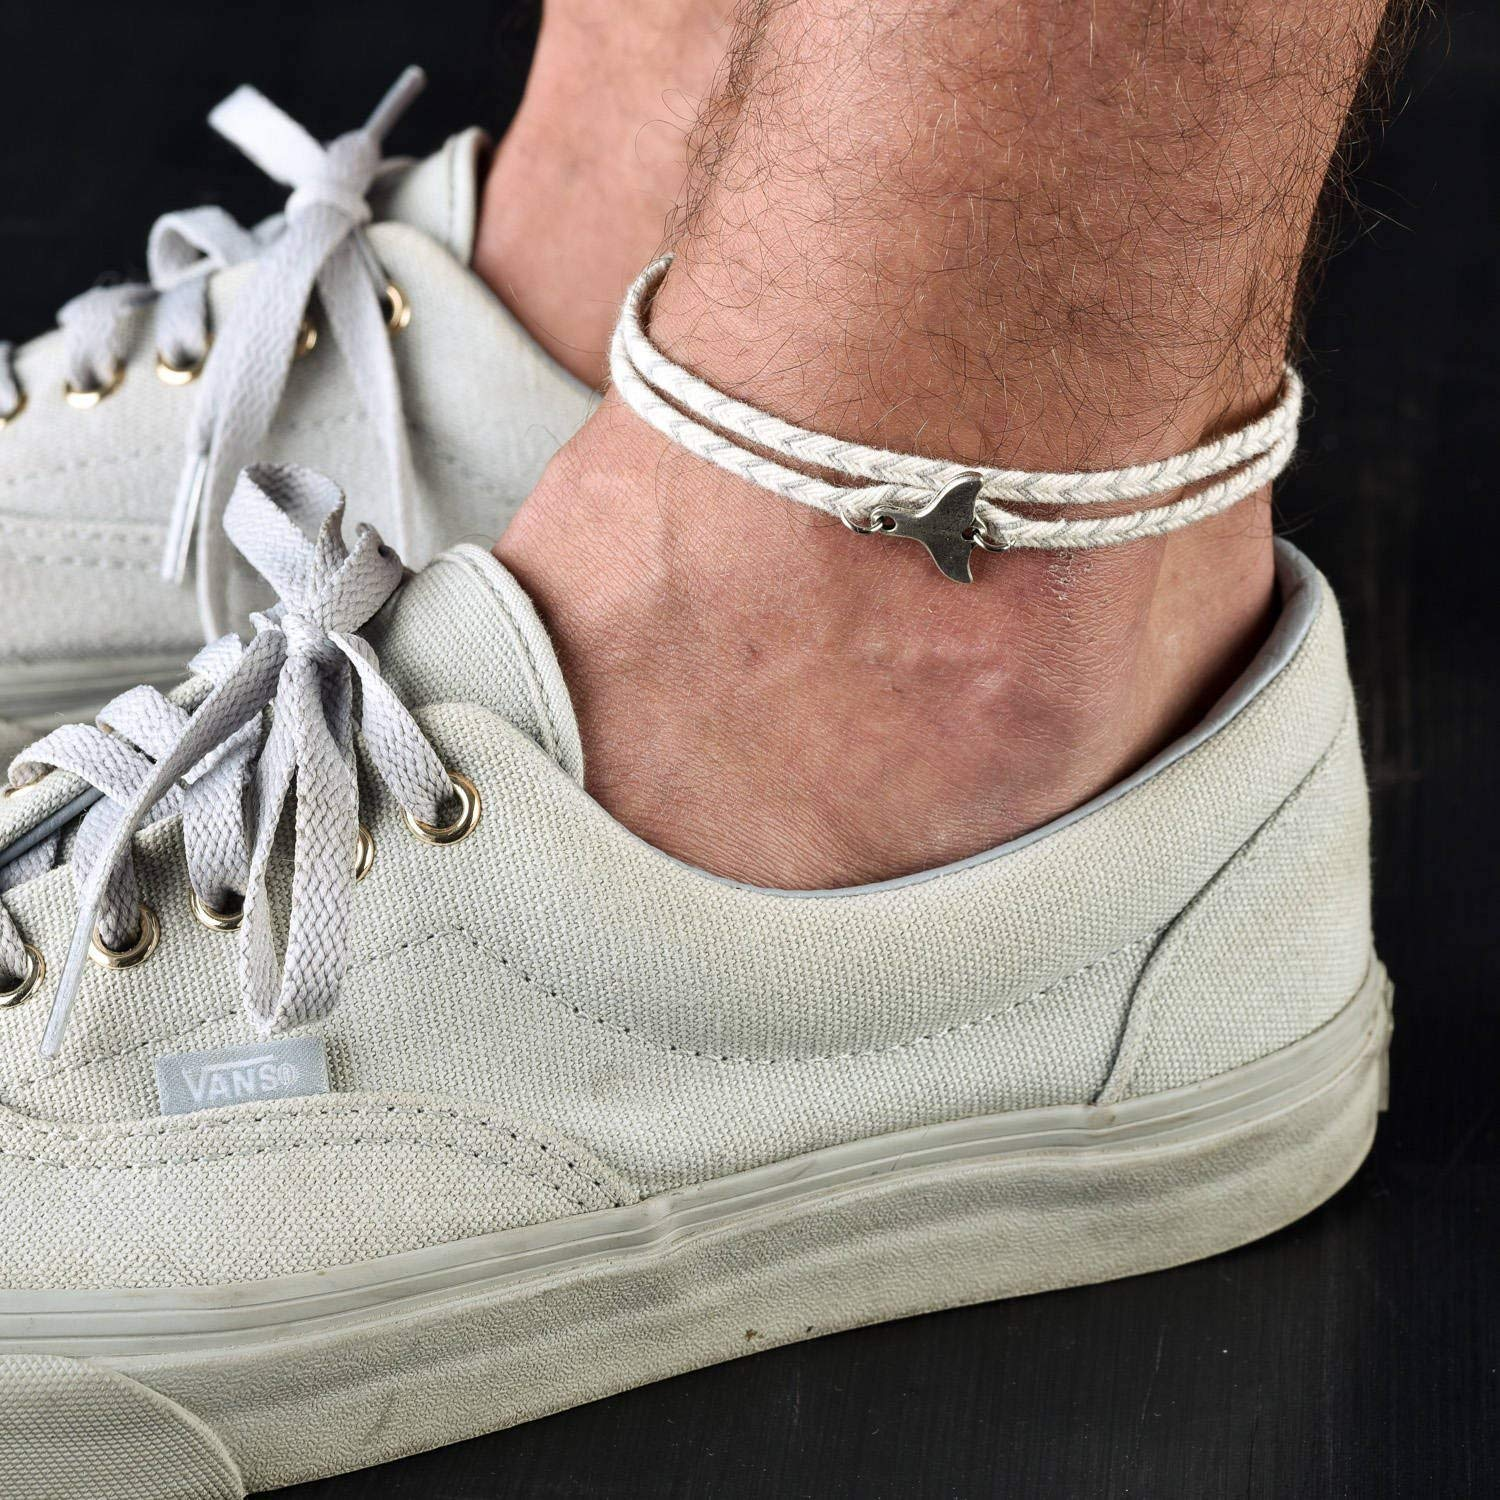 Handmade Gray Anklet For Men Set With Silver Plated Whale Tail Pendant By Galis Jewelry - Ankle Bracelet For Men - Whale Tail Anklet For Men